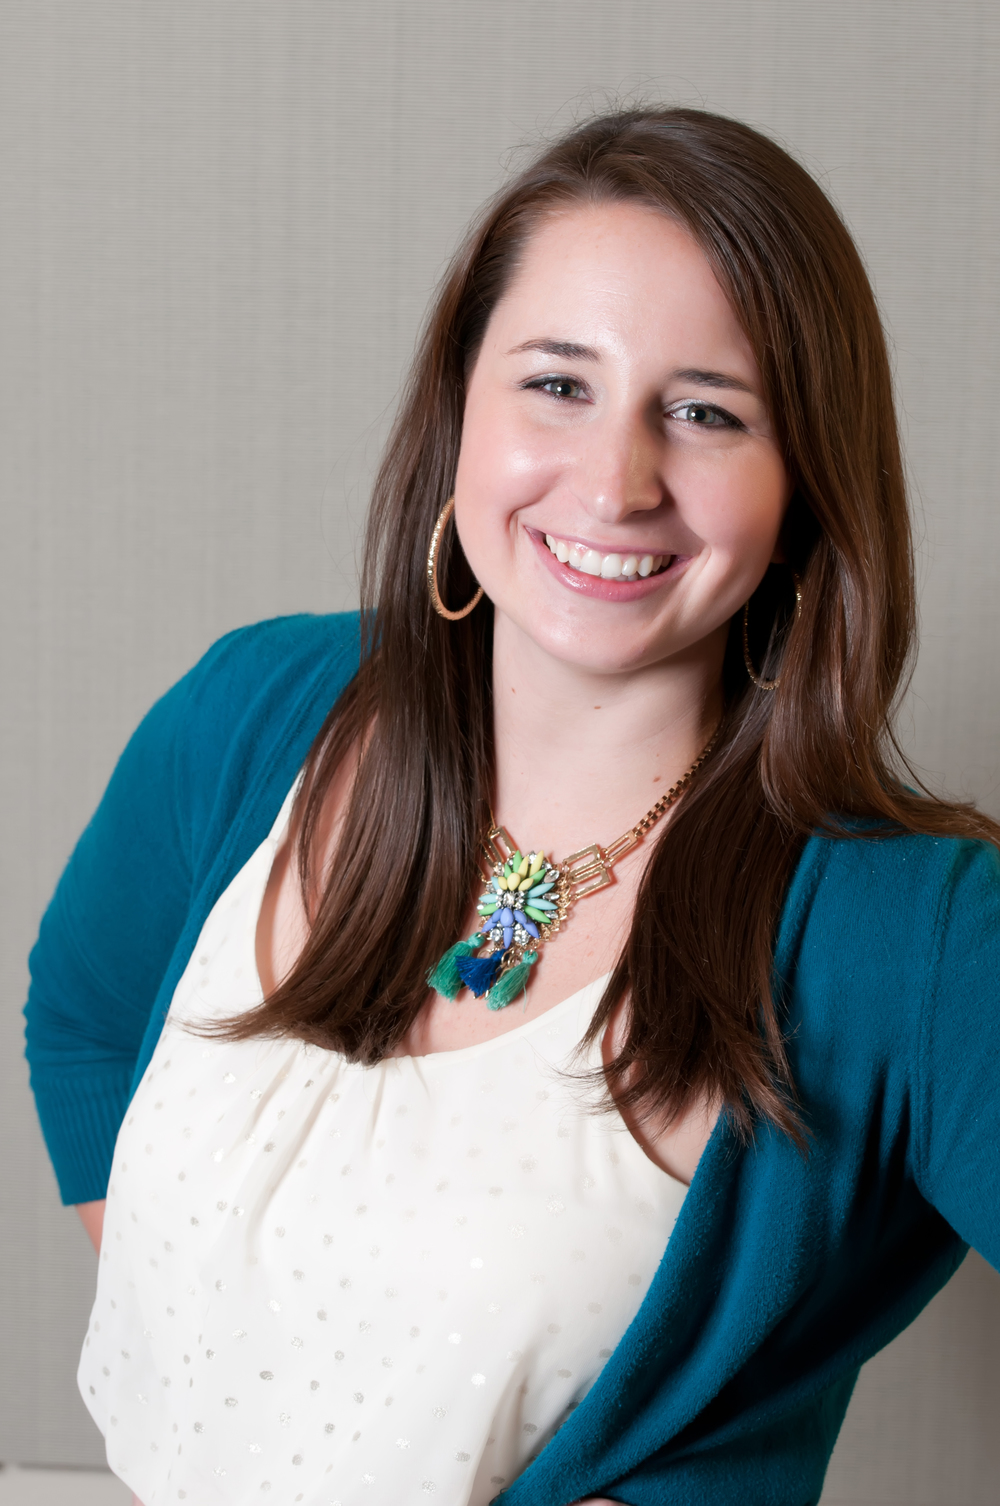 Abby Trescott is the art teacher at Rock Bridge High School.   ATrescott@CPSk12.org  573-214-3100